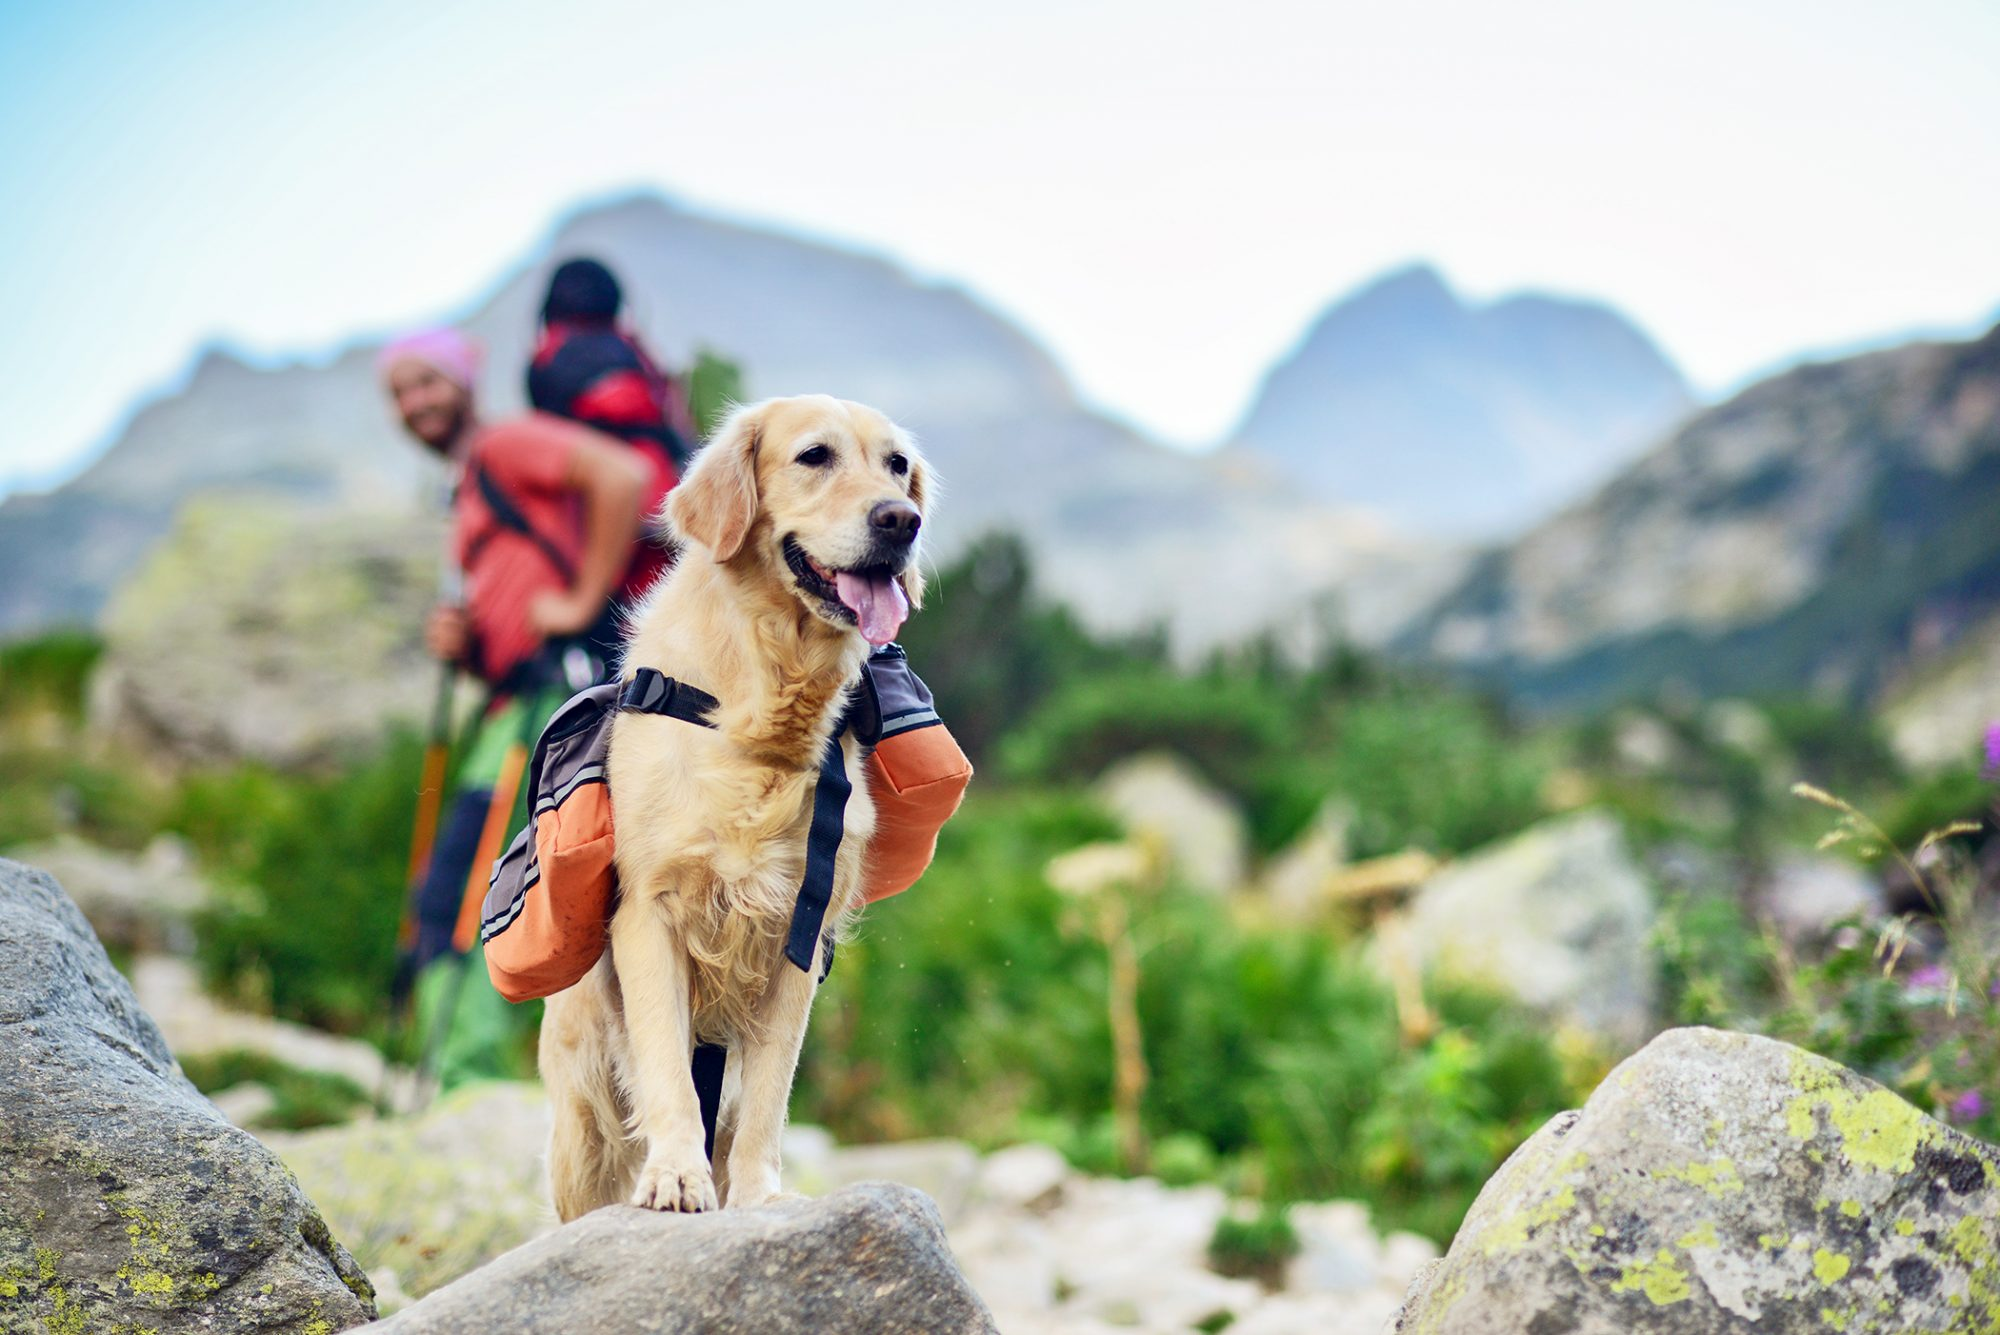 Golden retriever dog on a hike wearing a backpack in a mountain with his owners in the background